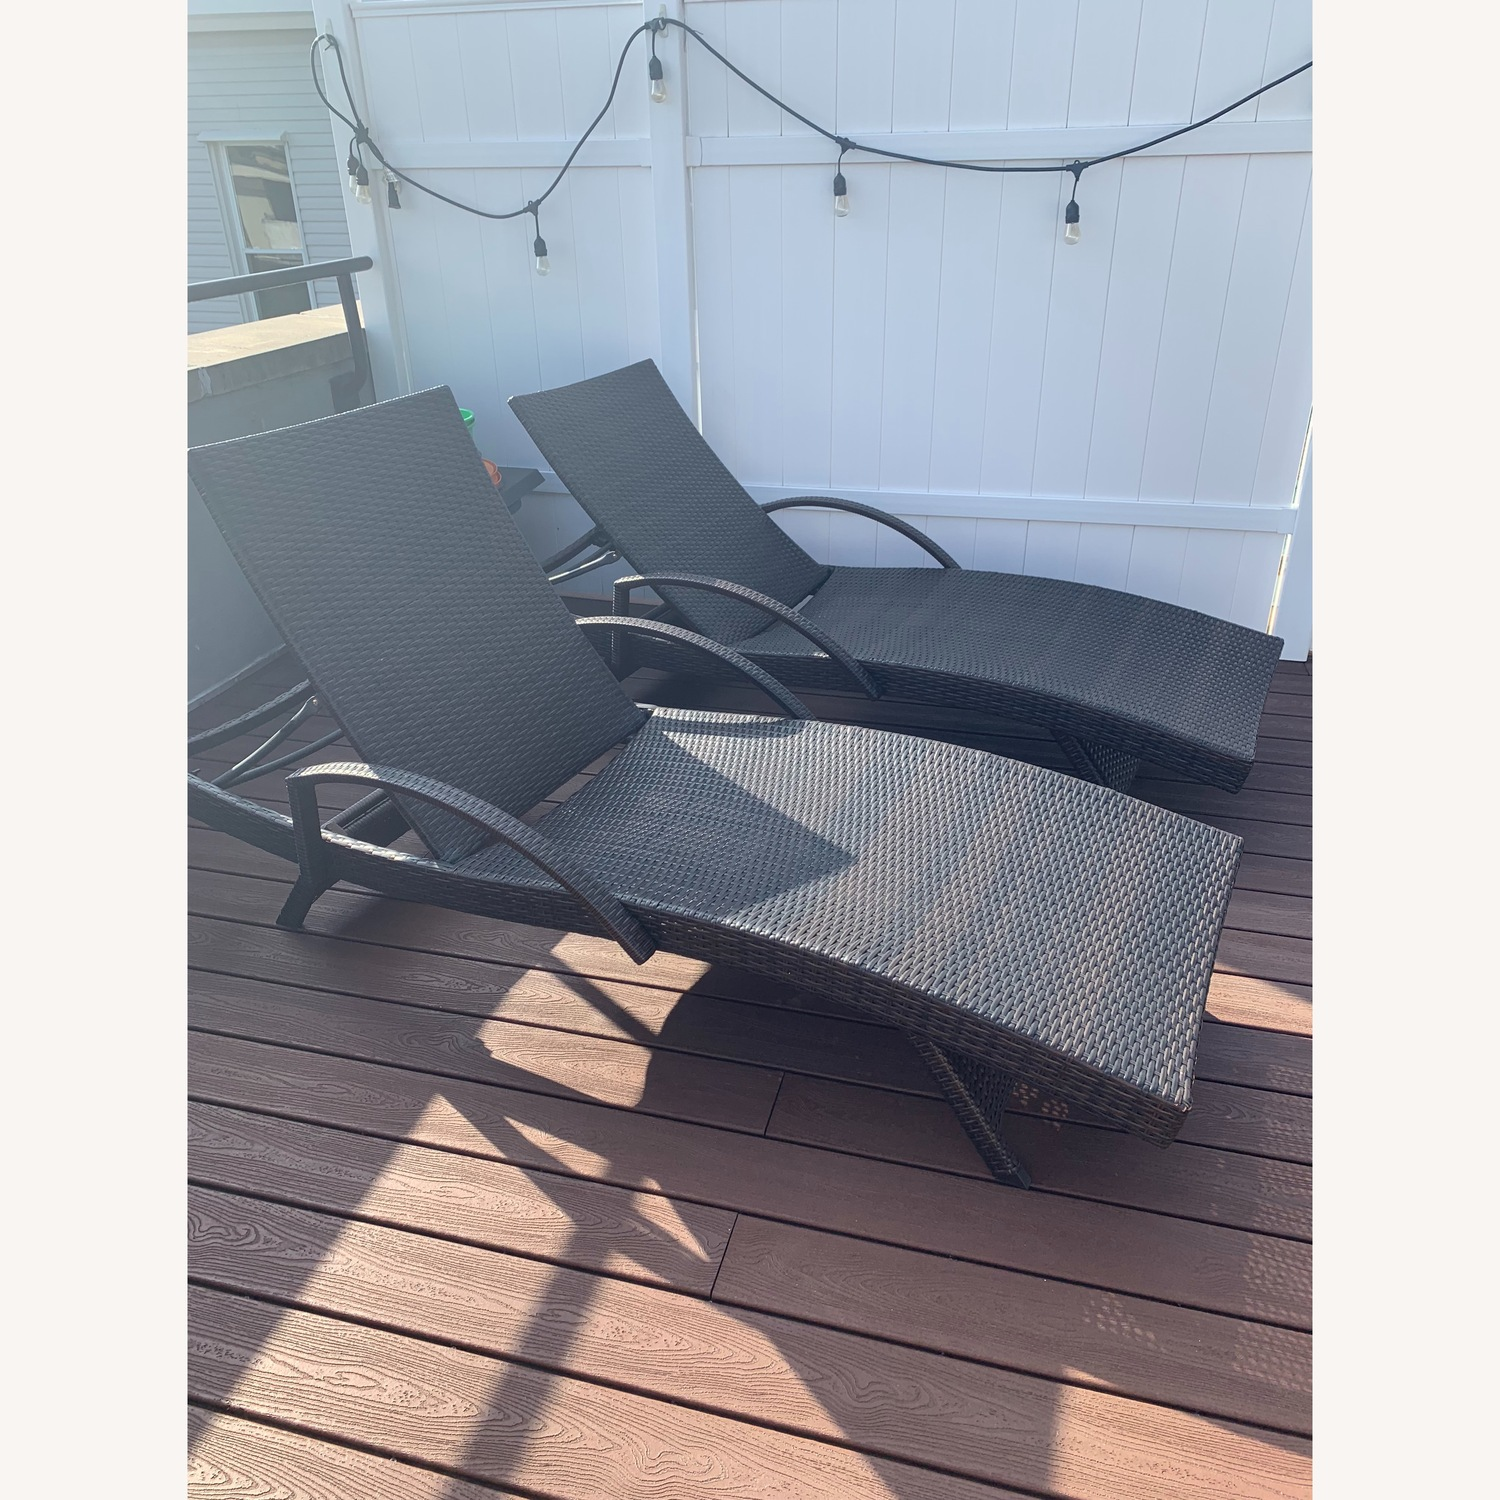 Rebello Outdoor Reclining Chaise Loungers - image-2